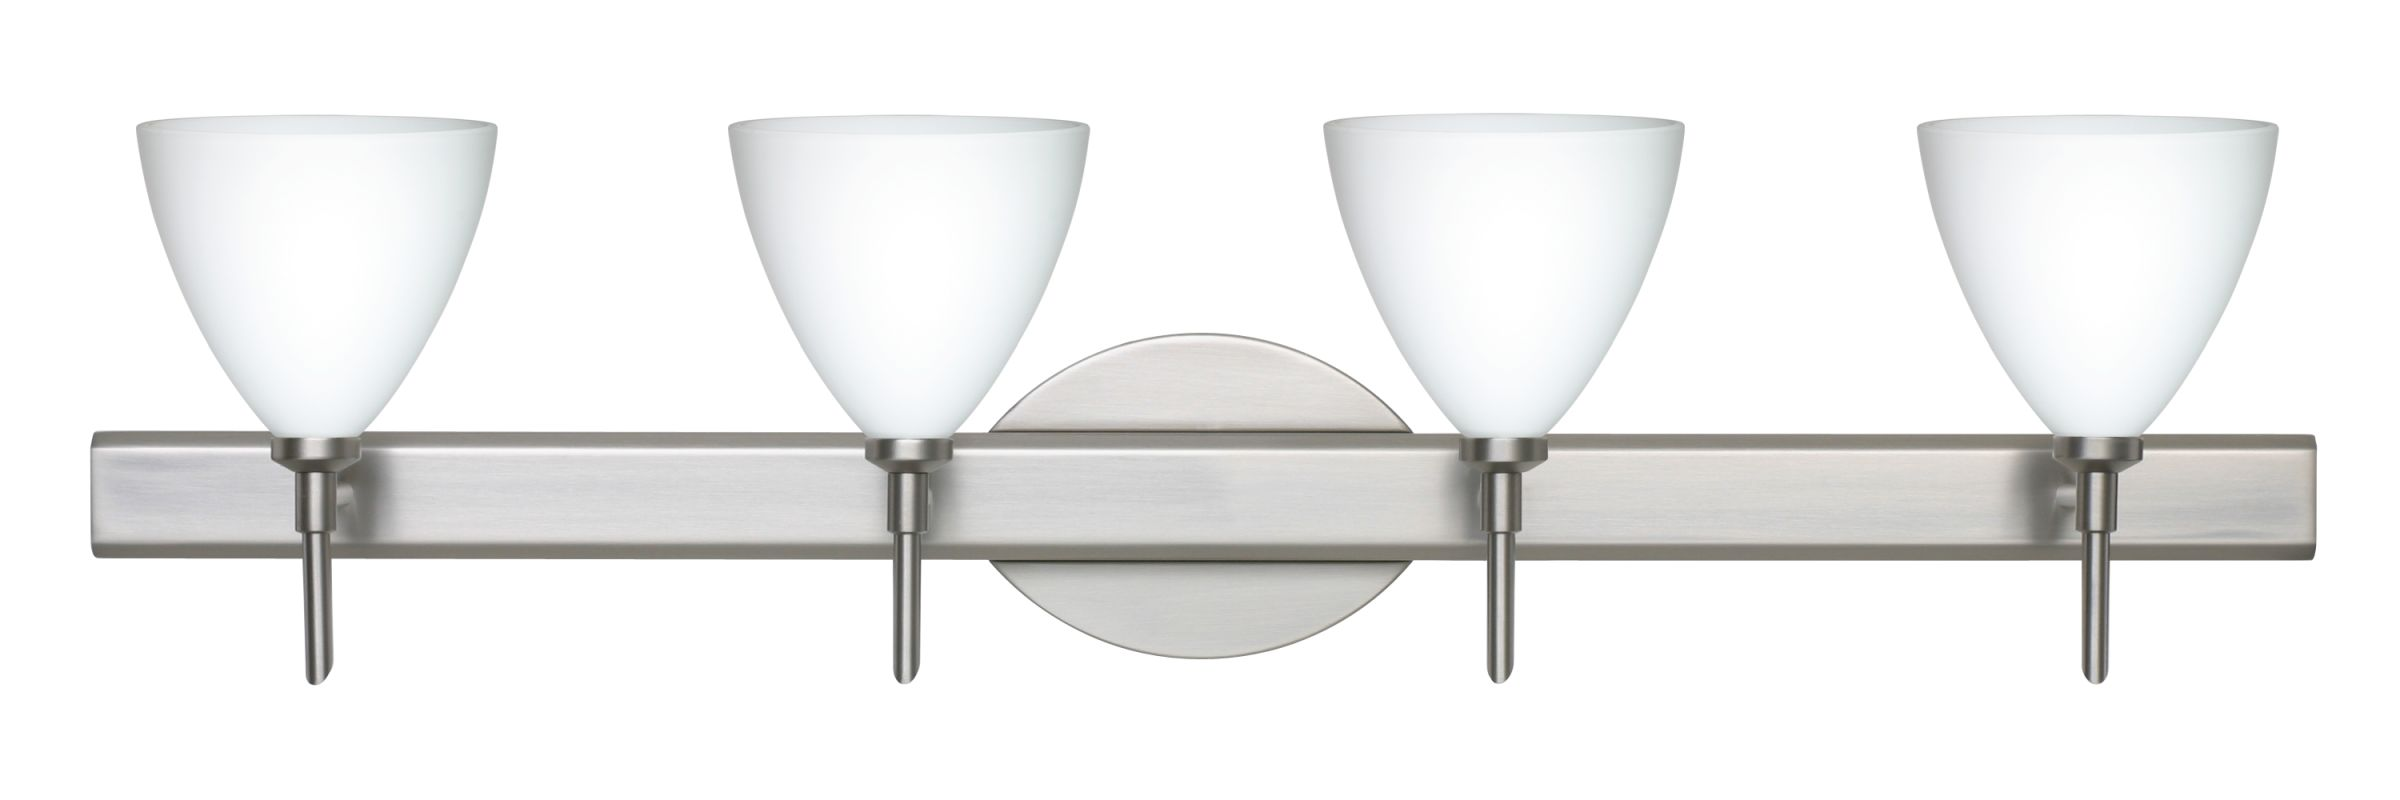 Besa Lighting 4SW-177907 Mia 4 Light Reversible Halogen Bathroom